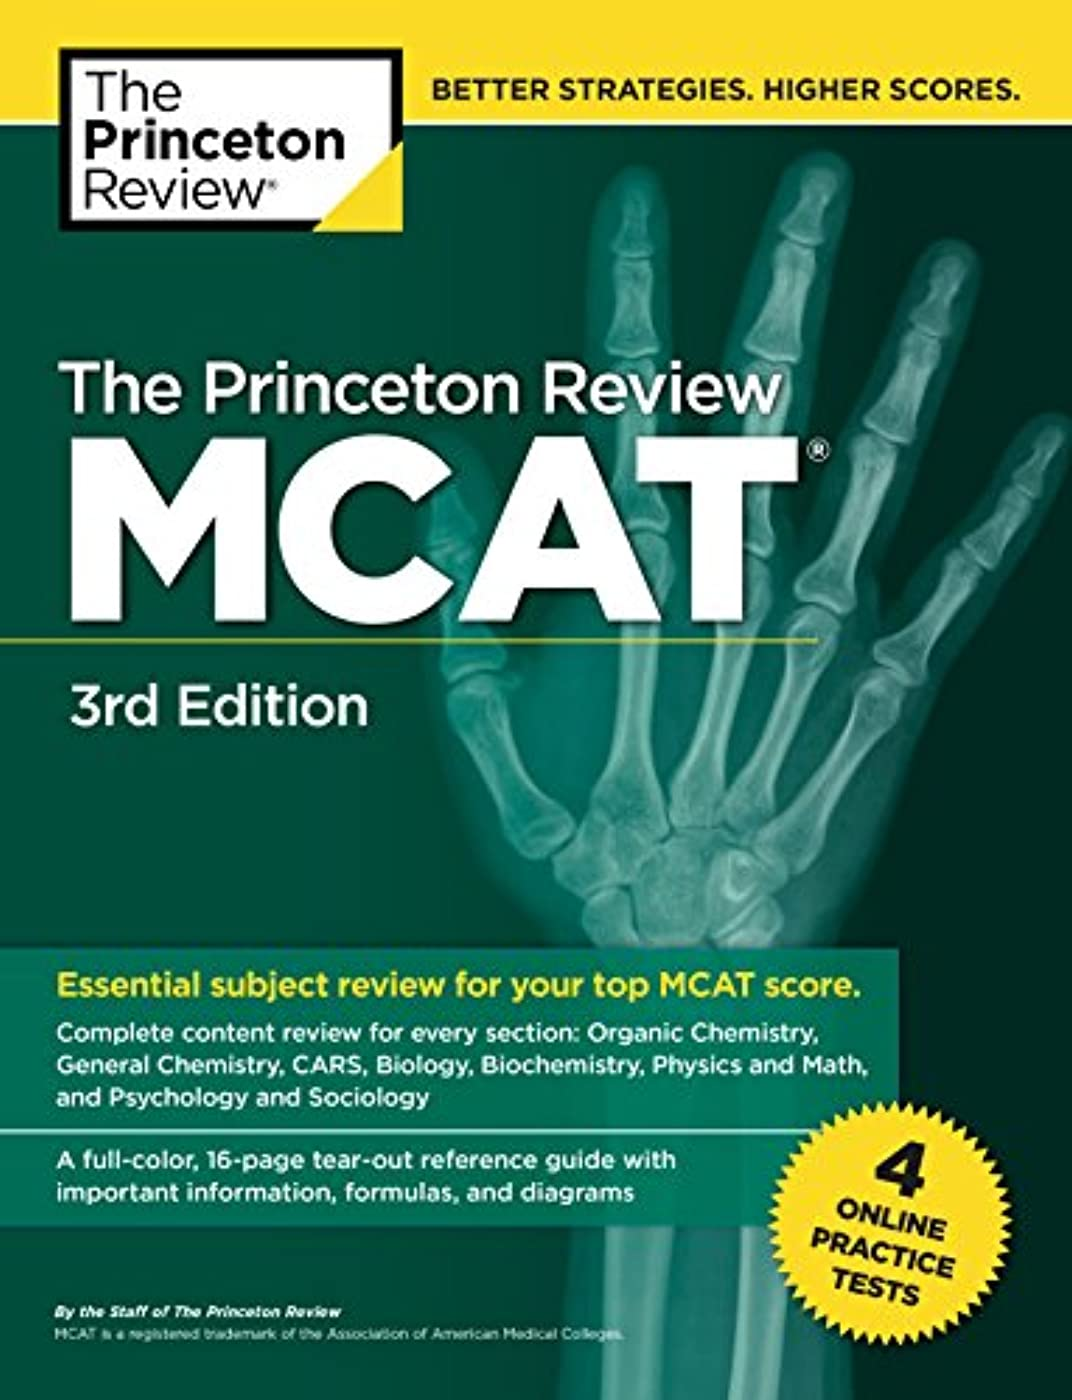 望ましい脱走野心的The Princeton Review MCAT, 3rd Edition: 4 Practice Tests + Complete Content Coverage (Graduate School Test Preparation)